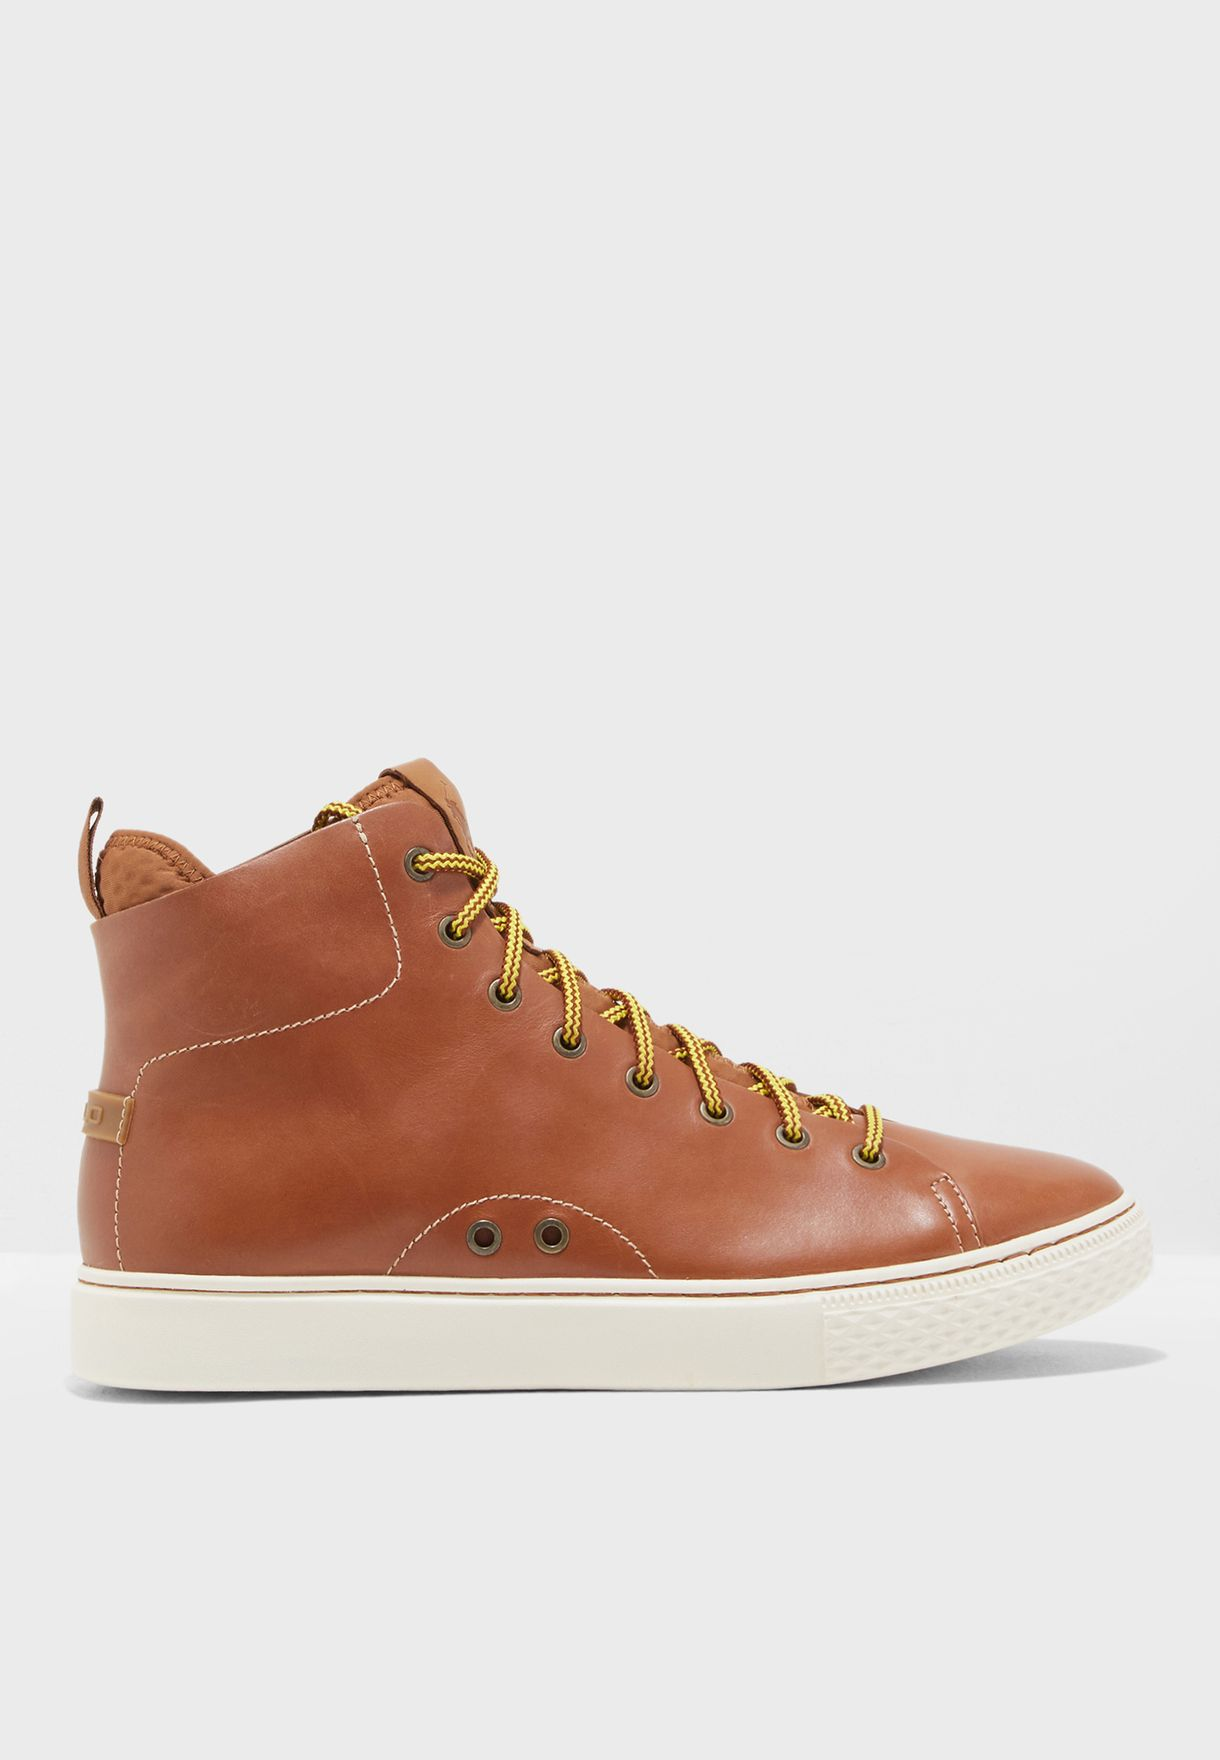 acf03cc2bf Shop Polo Ralph Lauren browns Dleaney Sneakers 816713102002 for Men ...